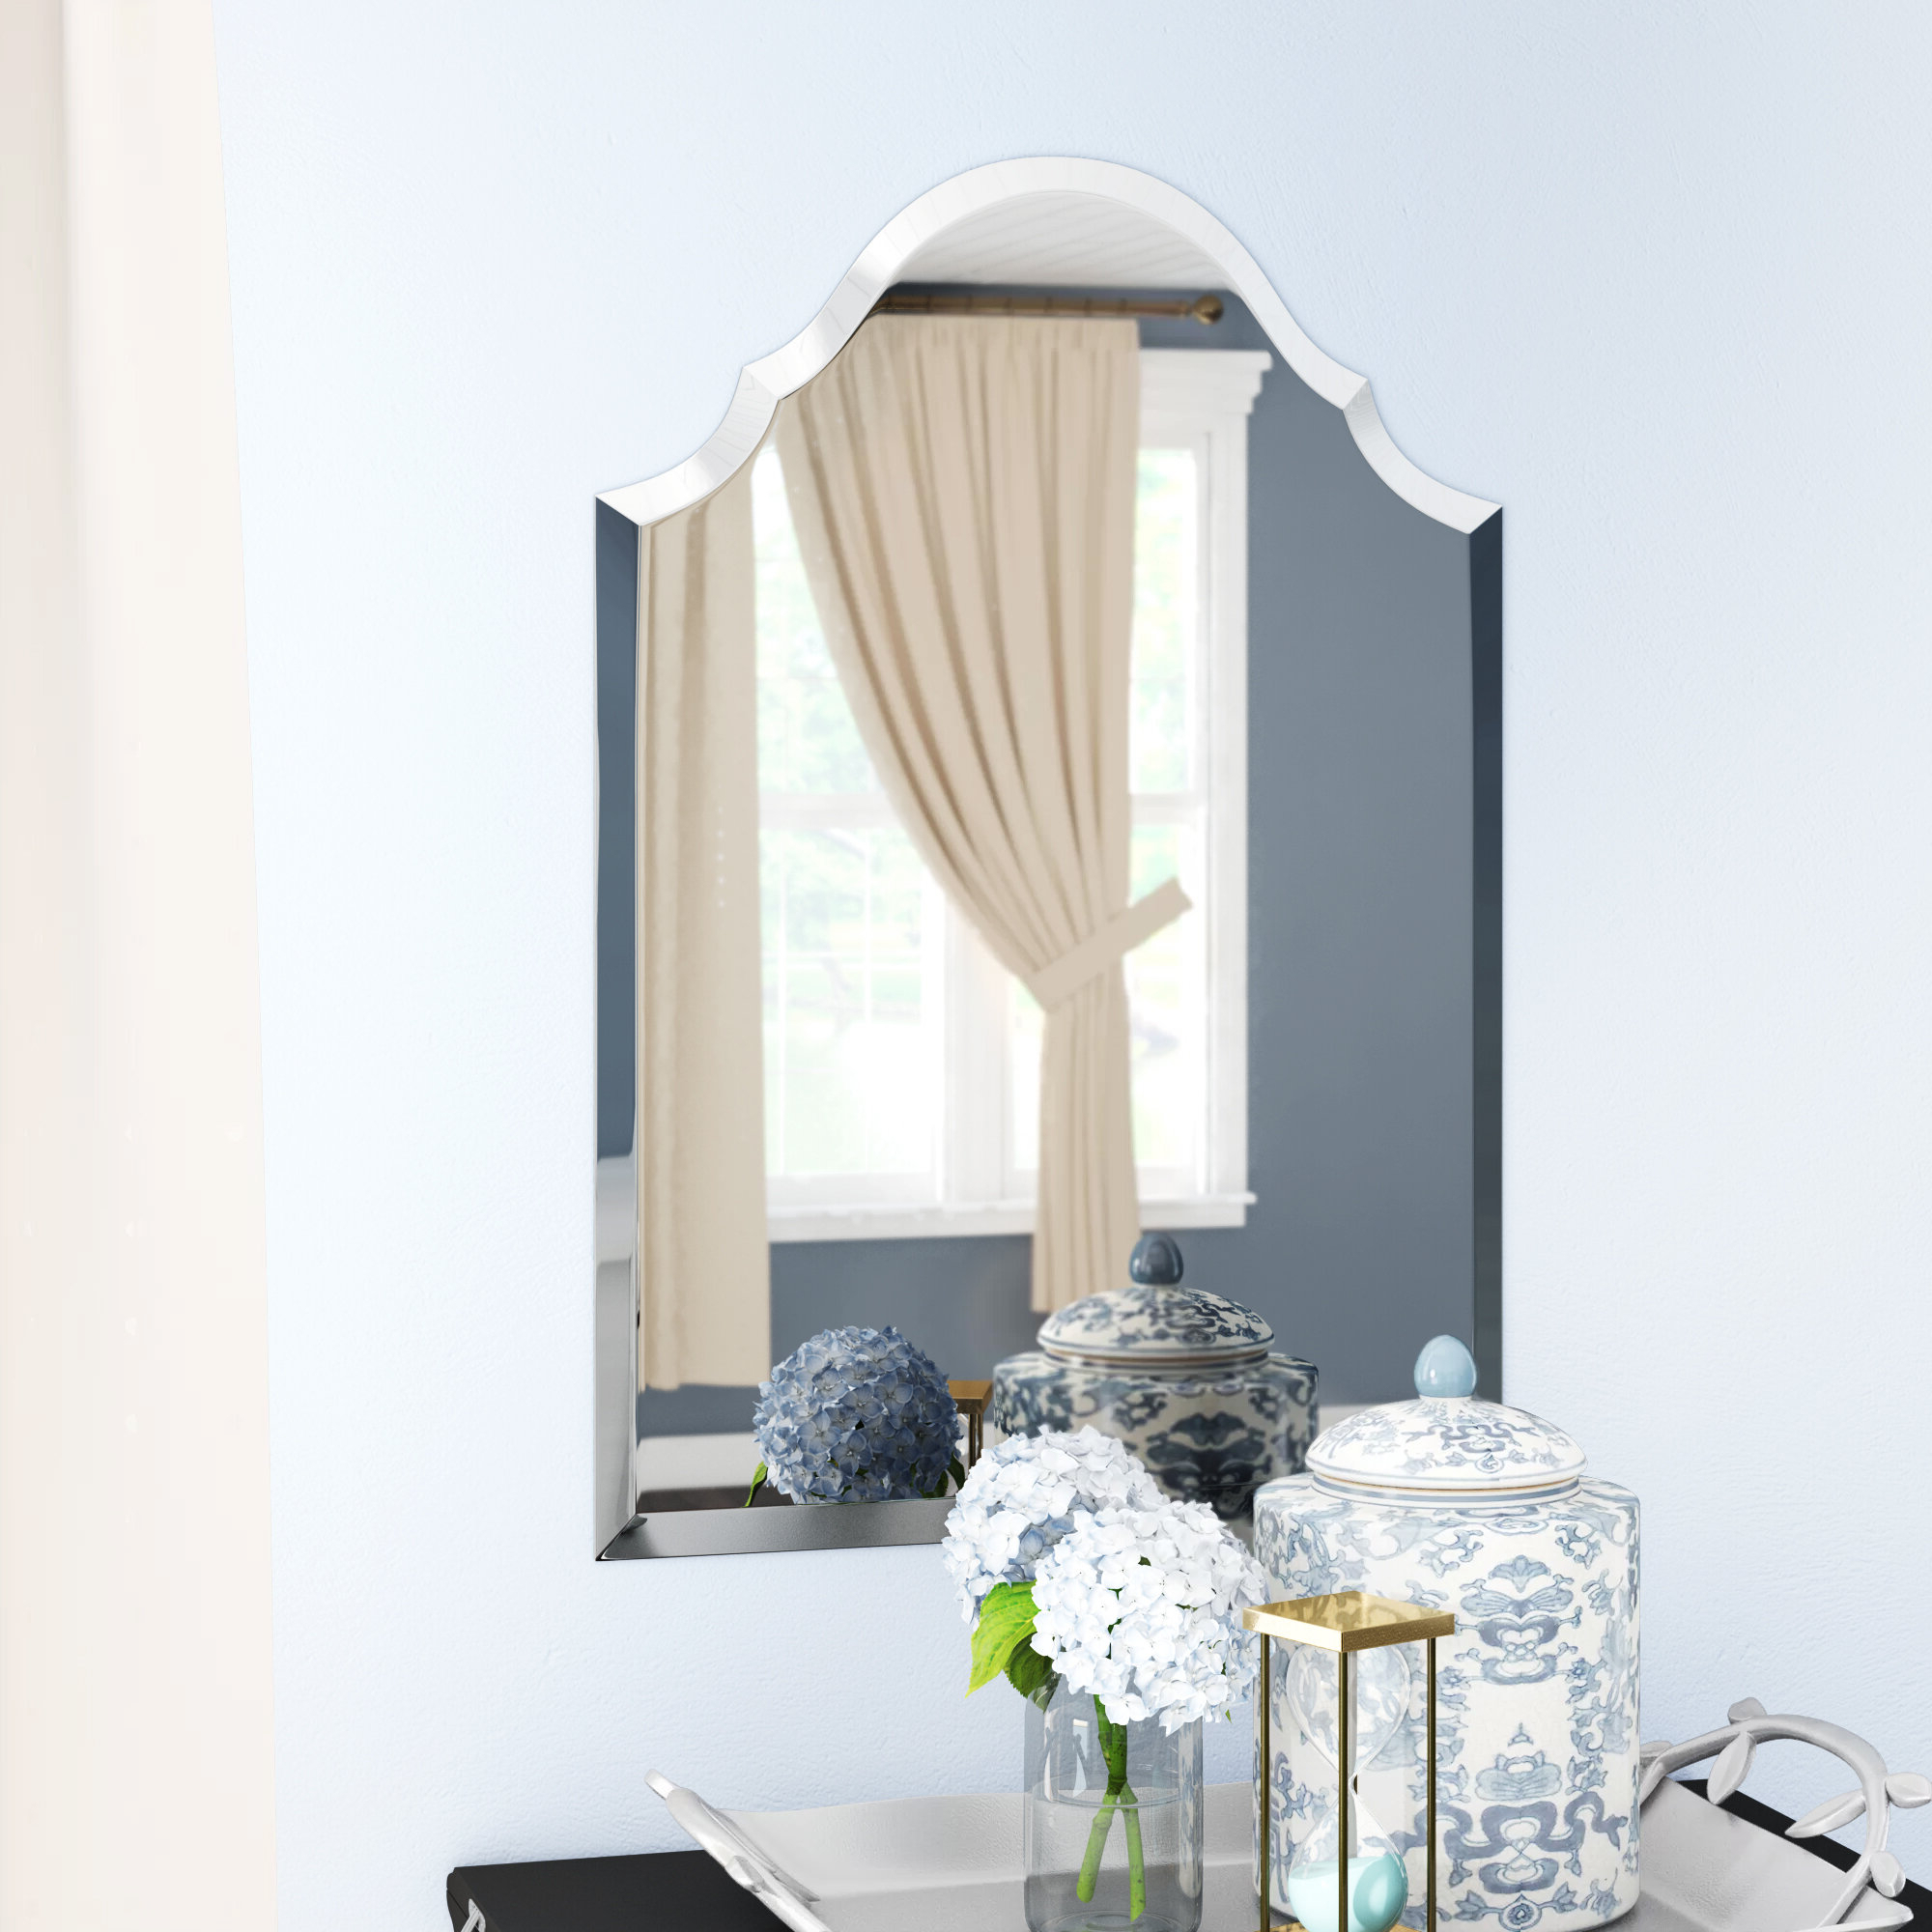 Guidinha Modern & Contemporary Accent Mirrors With Regard To Latest Morlan Accent Mirror (Gallery 20 of 20)